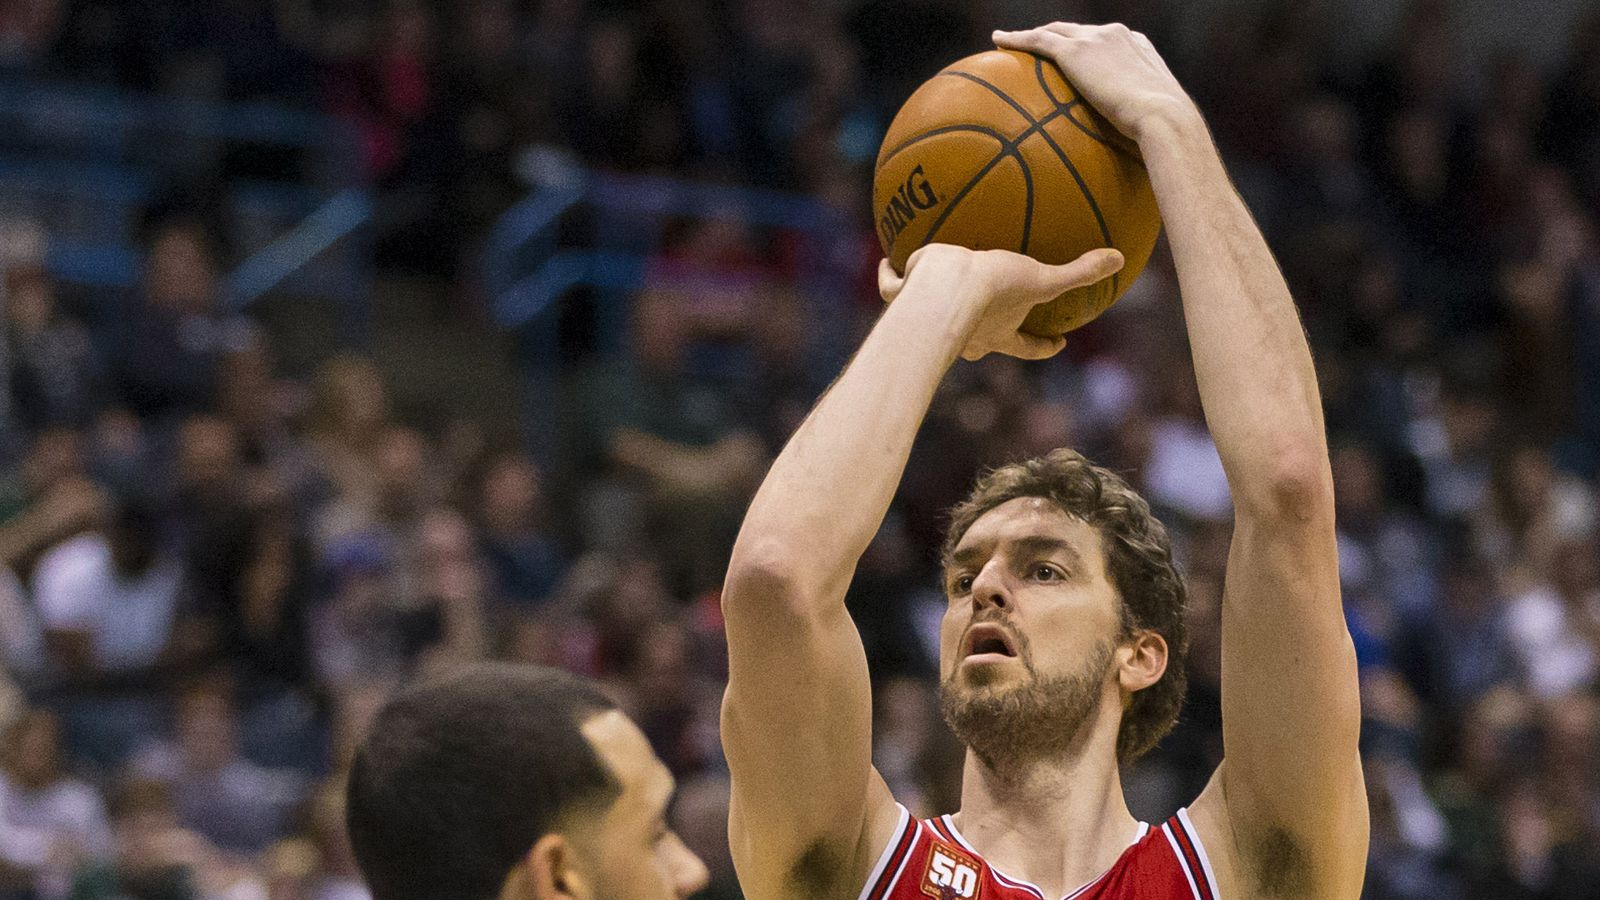 Pau Gasol agrees to sign with the San Antonio Spurs, per report